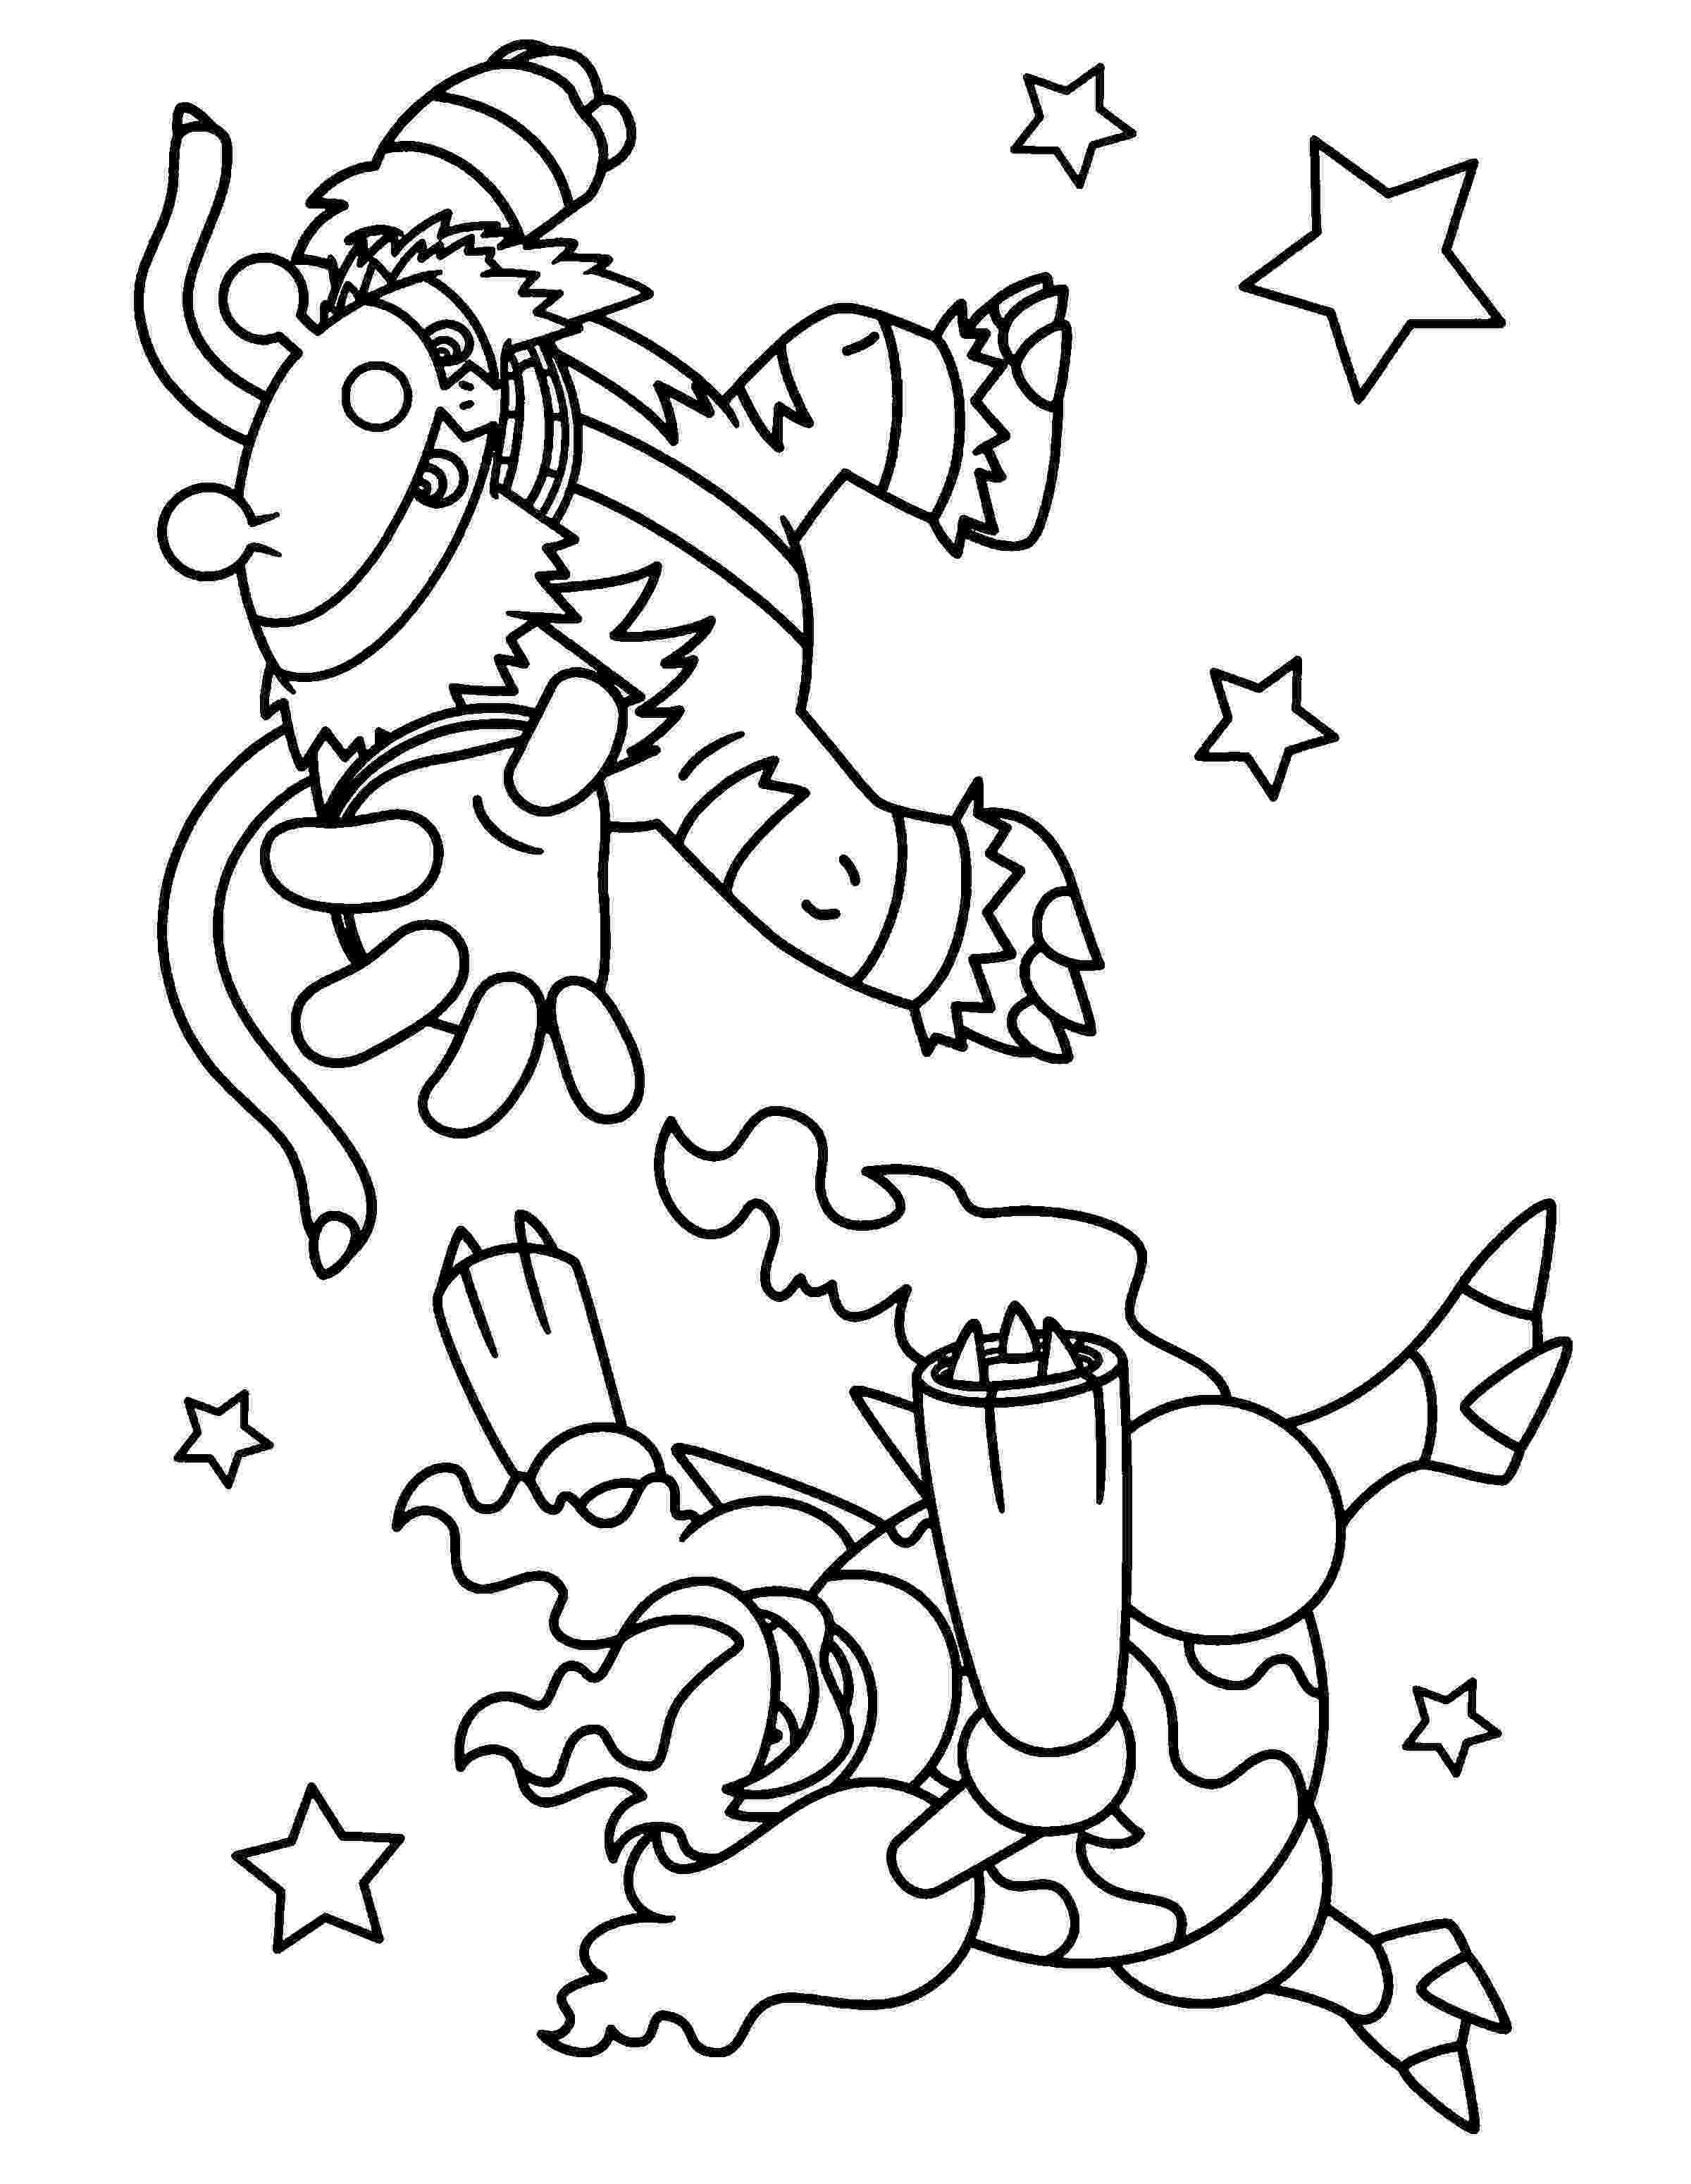 pokemon card coloring pages pokemon coloring book ぬりえ hellosugah livejournal pages pokemon card coloring